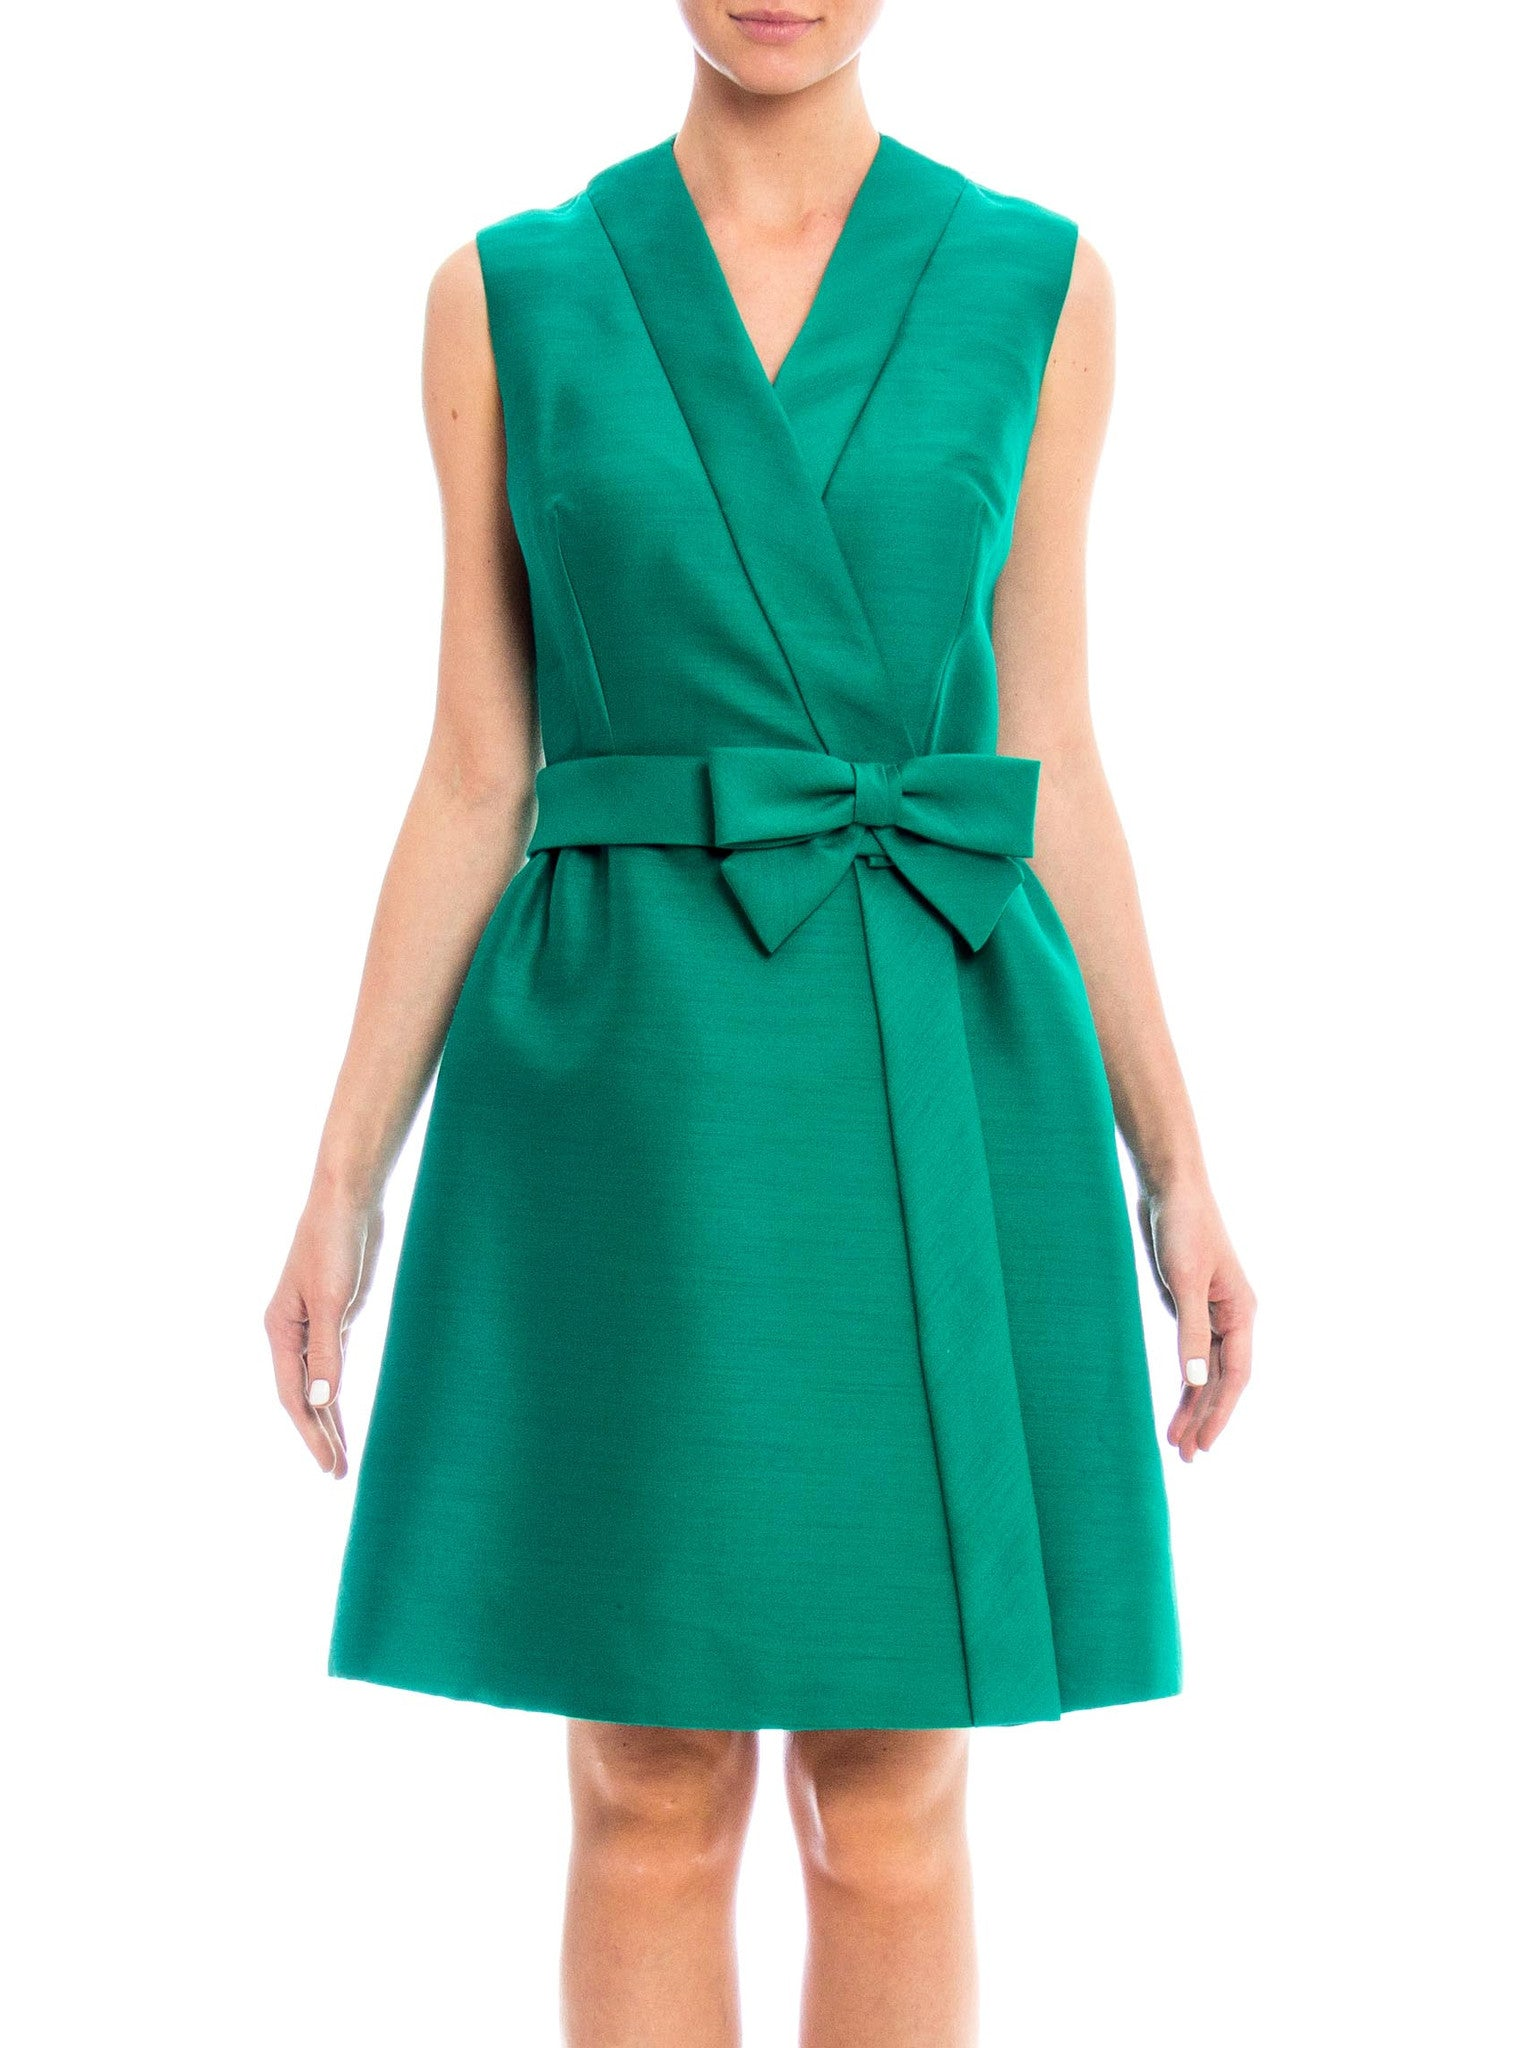 1960s Structured Cocktail Dress with Bow Detail